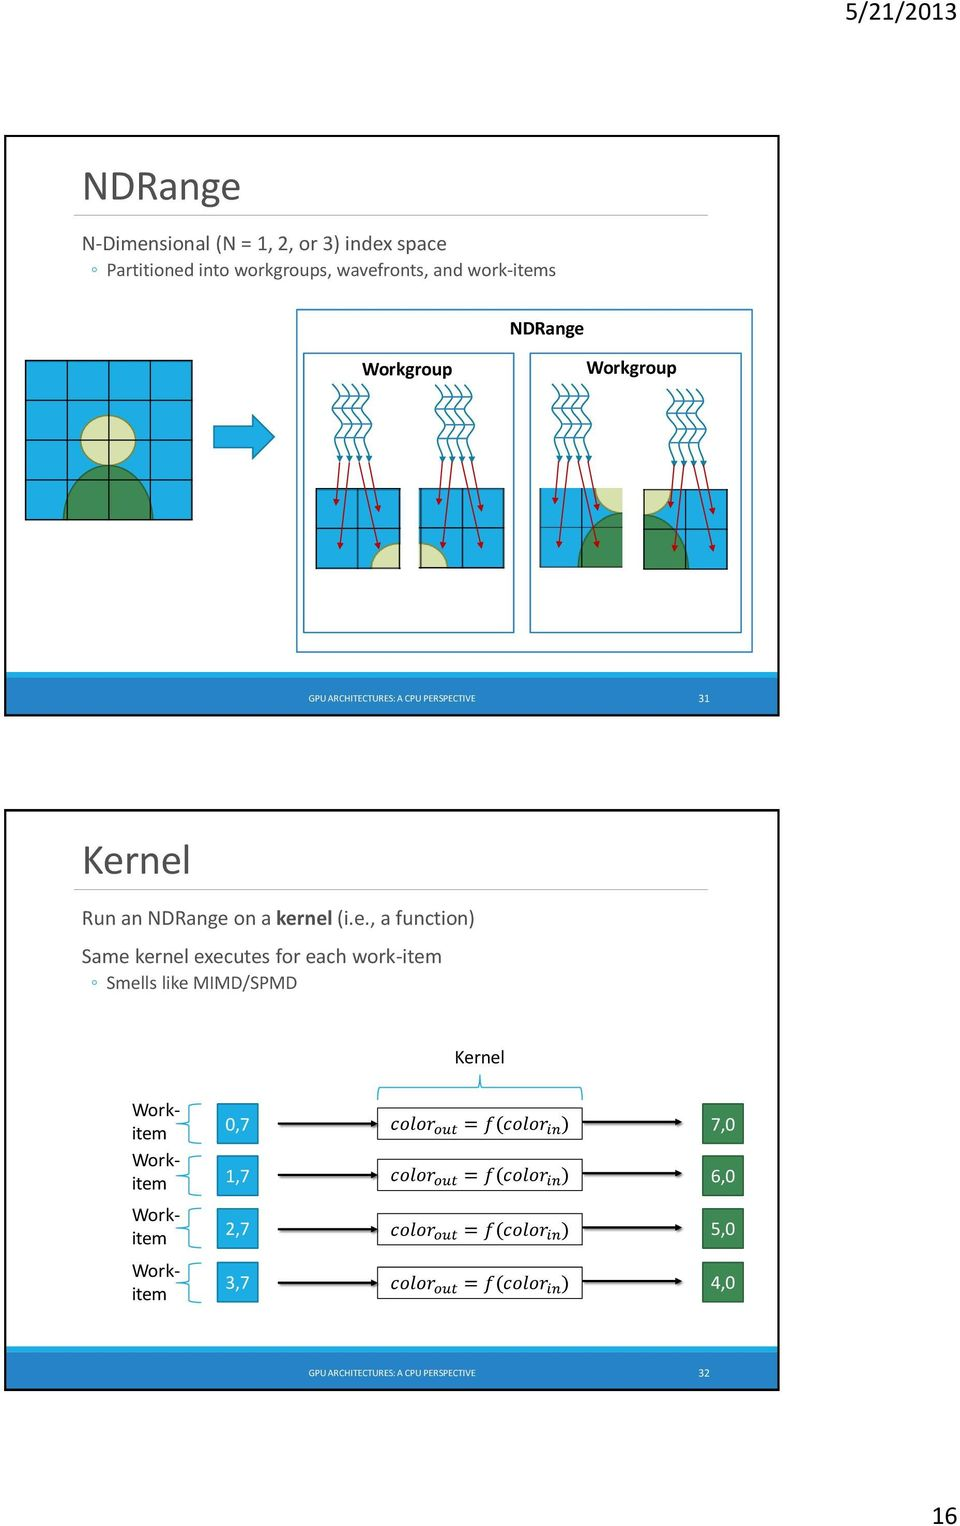 nel Run an NDRange on a kernel (i.e., a function) Same kernel executes for each work-item Smells like MIMD/SPMD Kernel